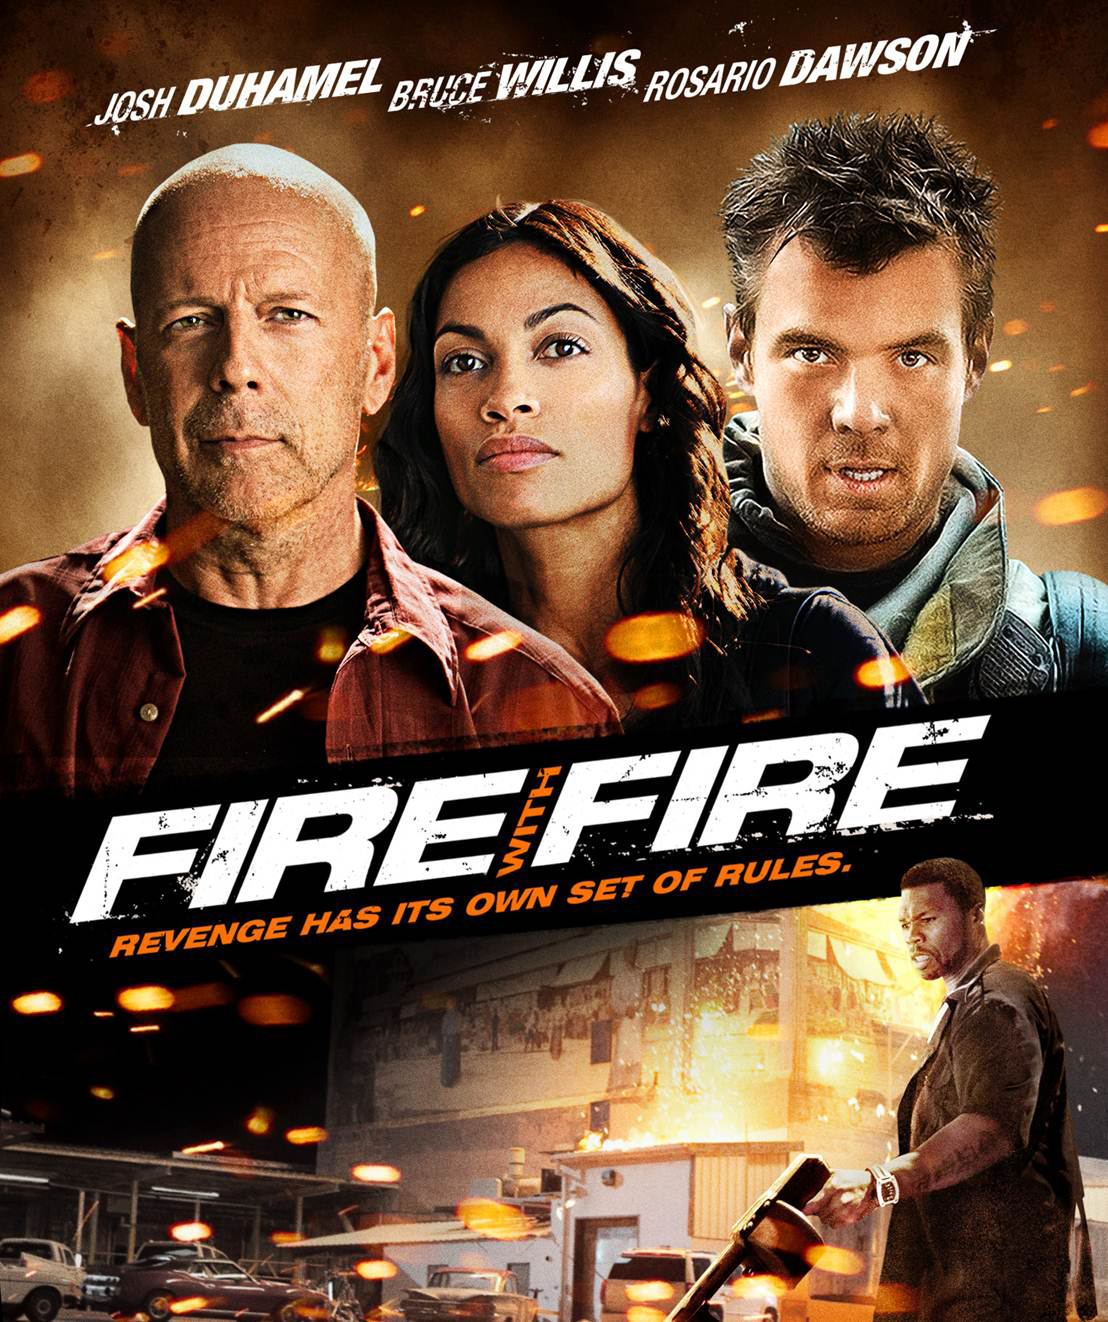 http://4.bp.blogspot.com/-pyT9cysuXDg/USmtUoXGjdI/AAAAAAAAAF0/T9gseWtz9M0/s1600/fire-with-fire-movie+(1).jpg